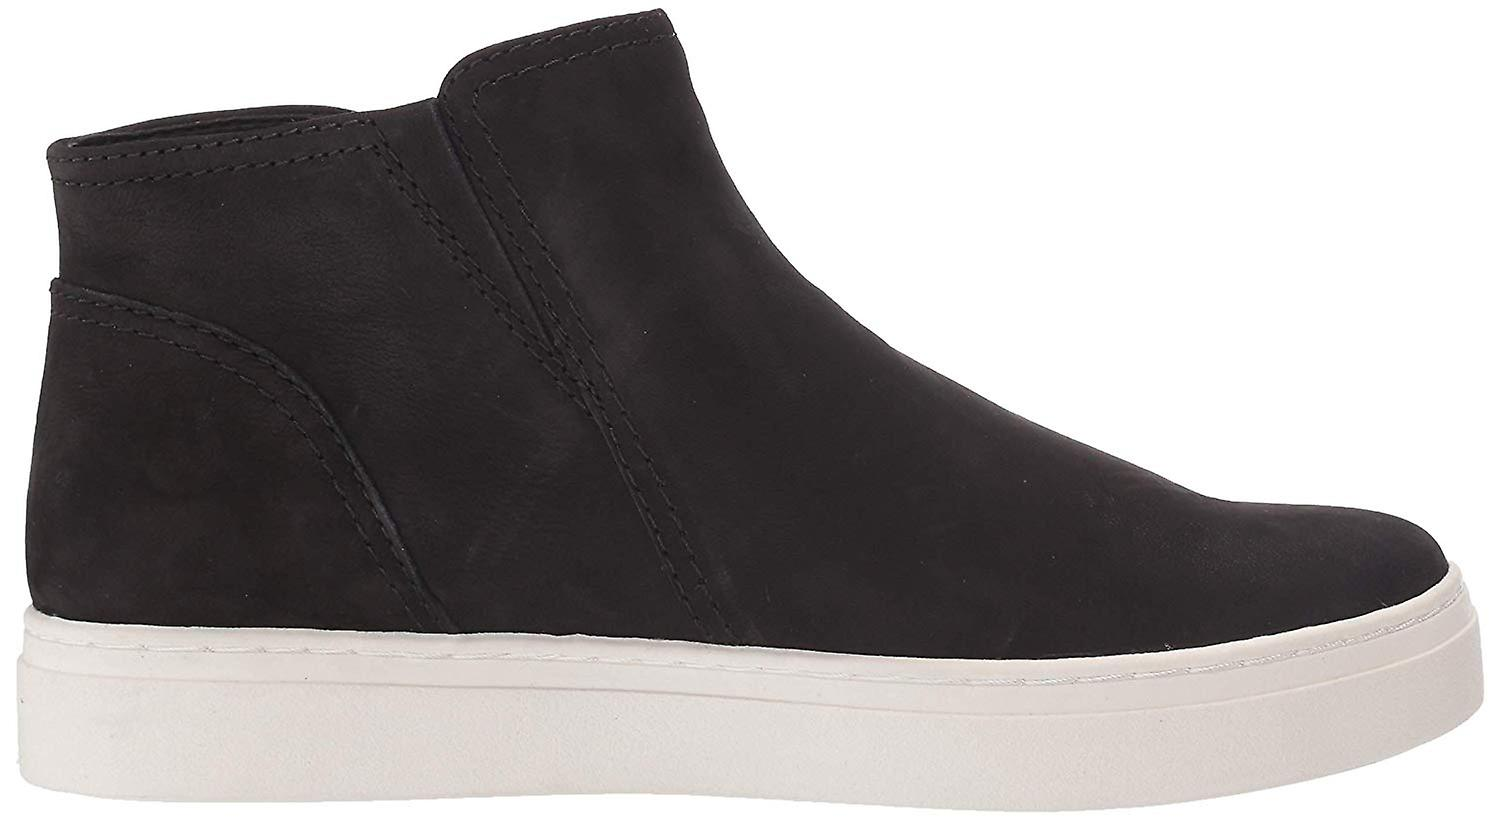 Naturalizer Women's Celeste Booties Ankle Boot BFFoL